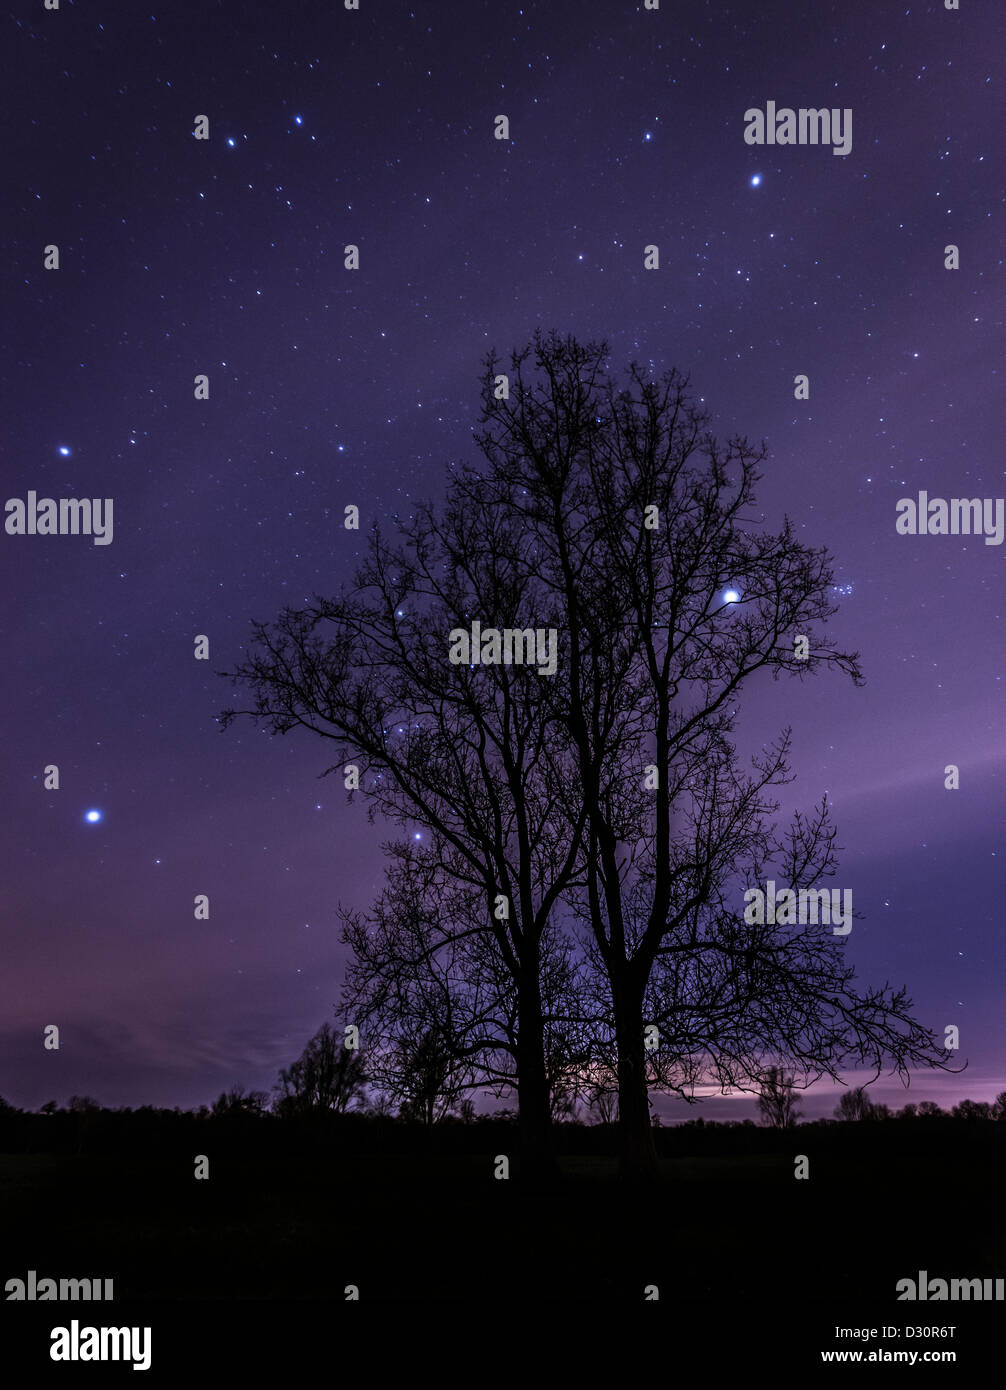 Silhouetted tress against a star filled sky, Warwickshire, England, UK - Stock Image